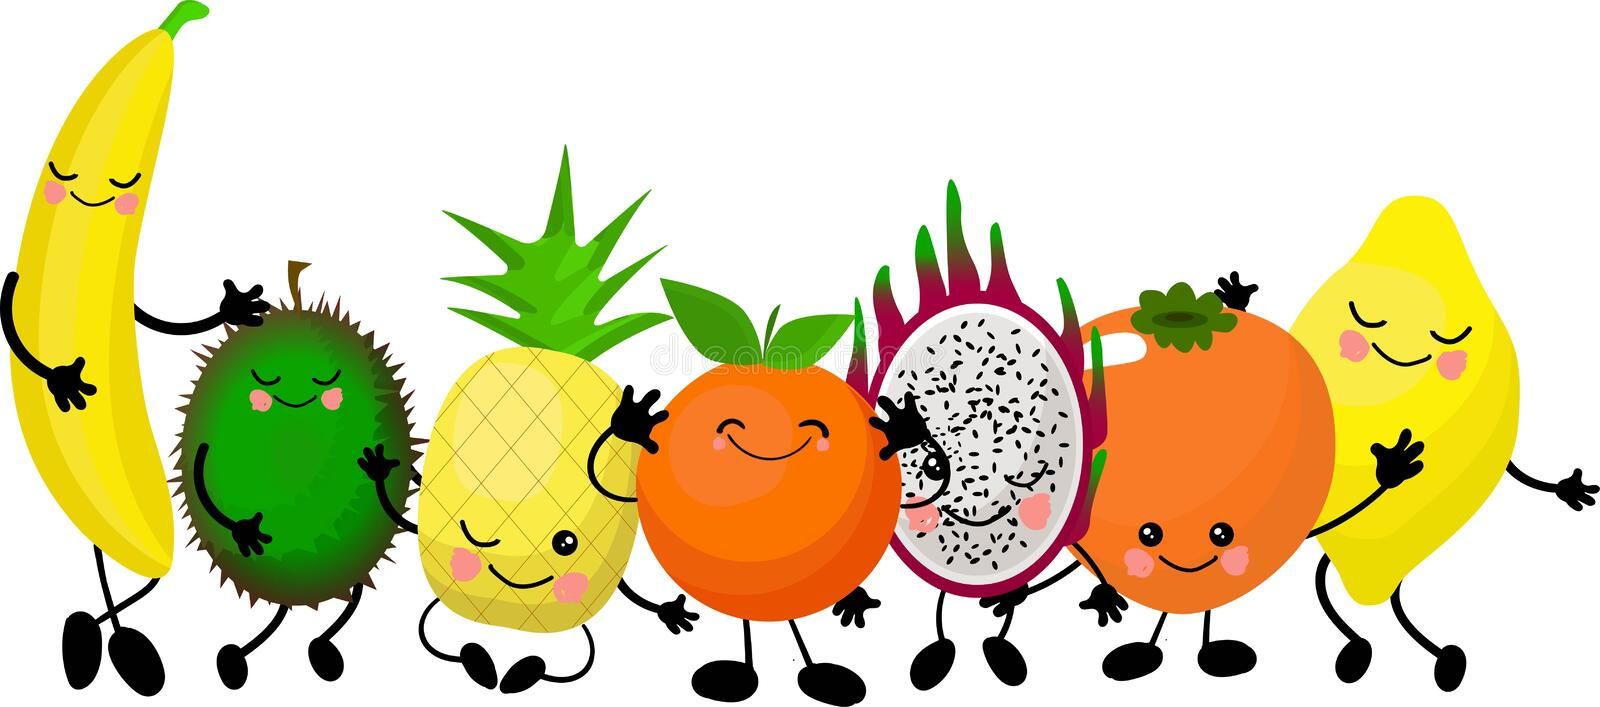 Funny emotional smiling fruits and vegetables. Smiling faces. Cute food characters. Farm product. Vegetarian food. Hand drawn kids royalty free illustration